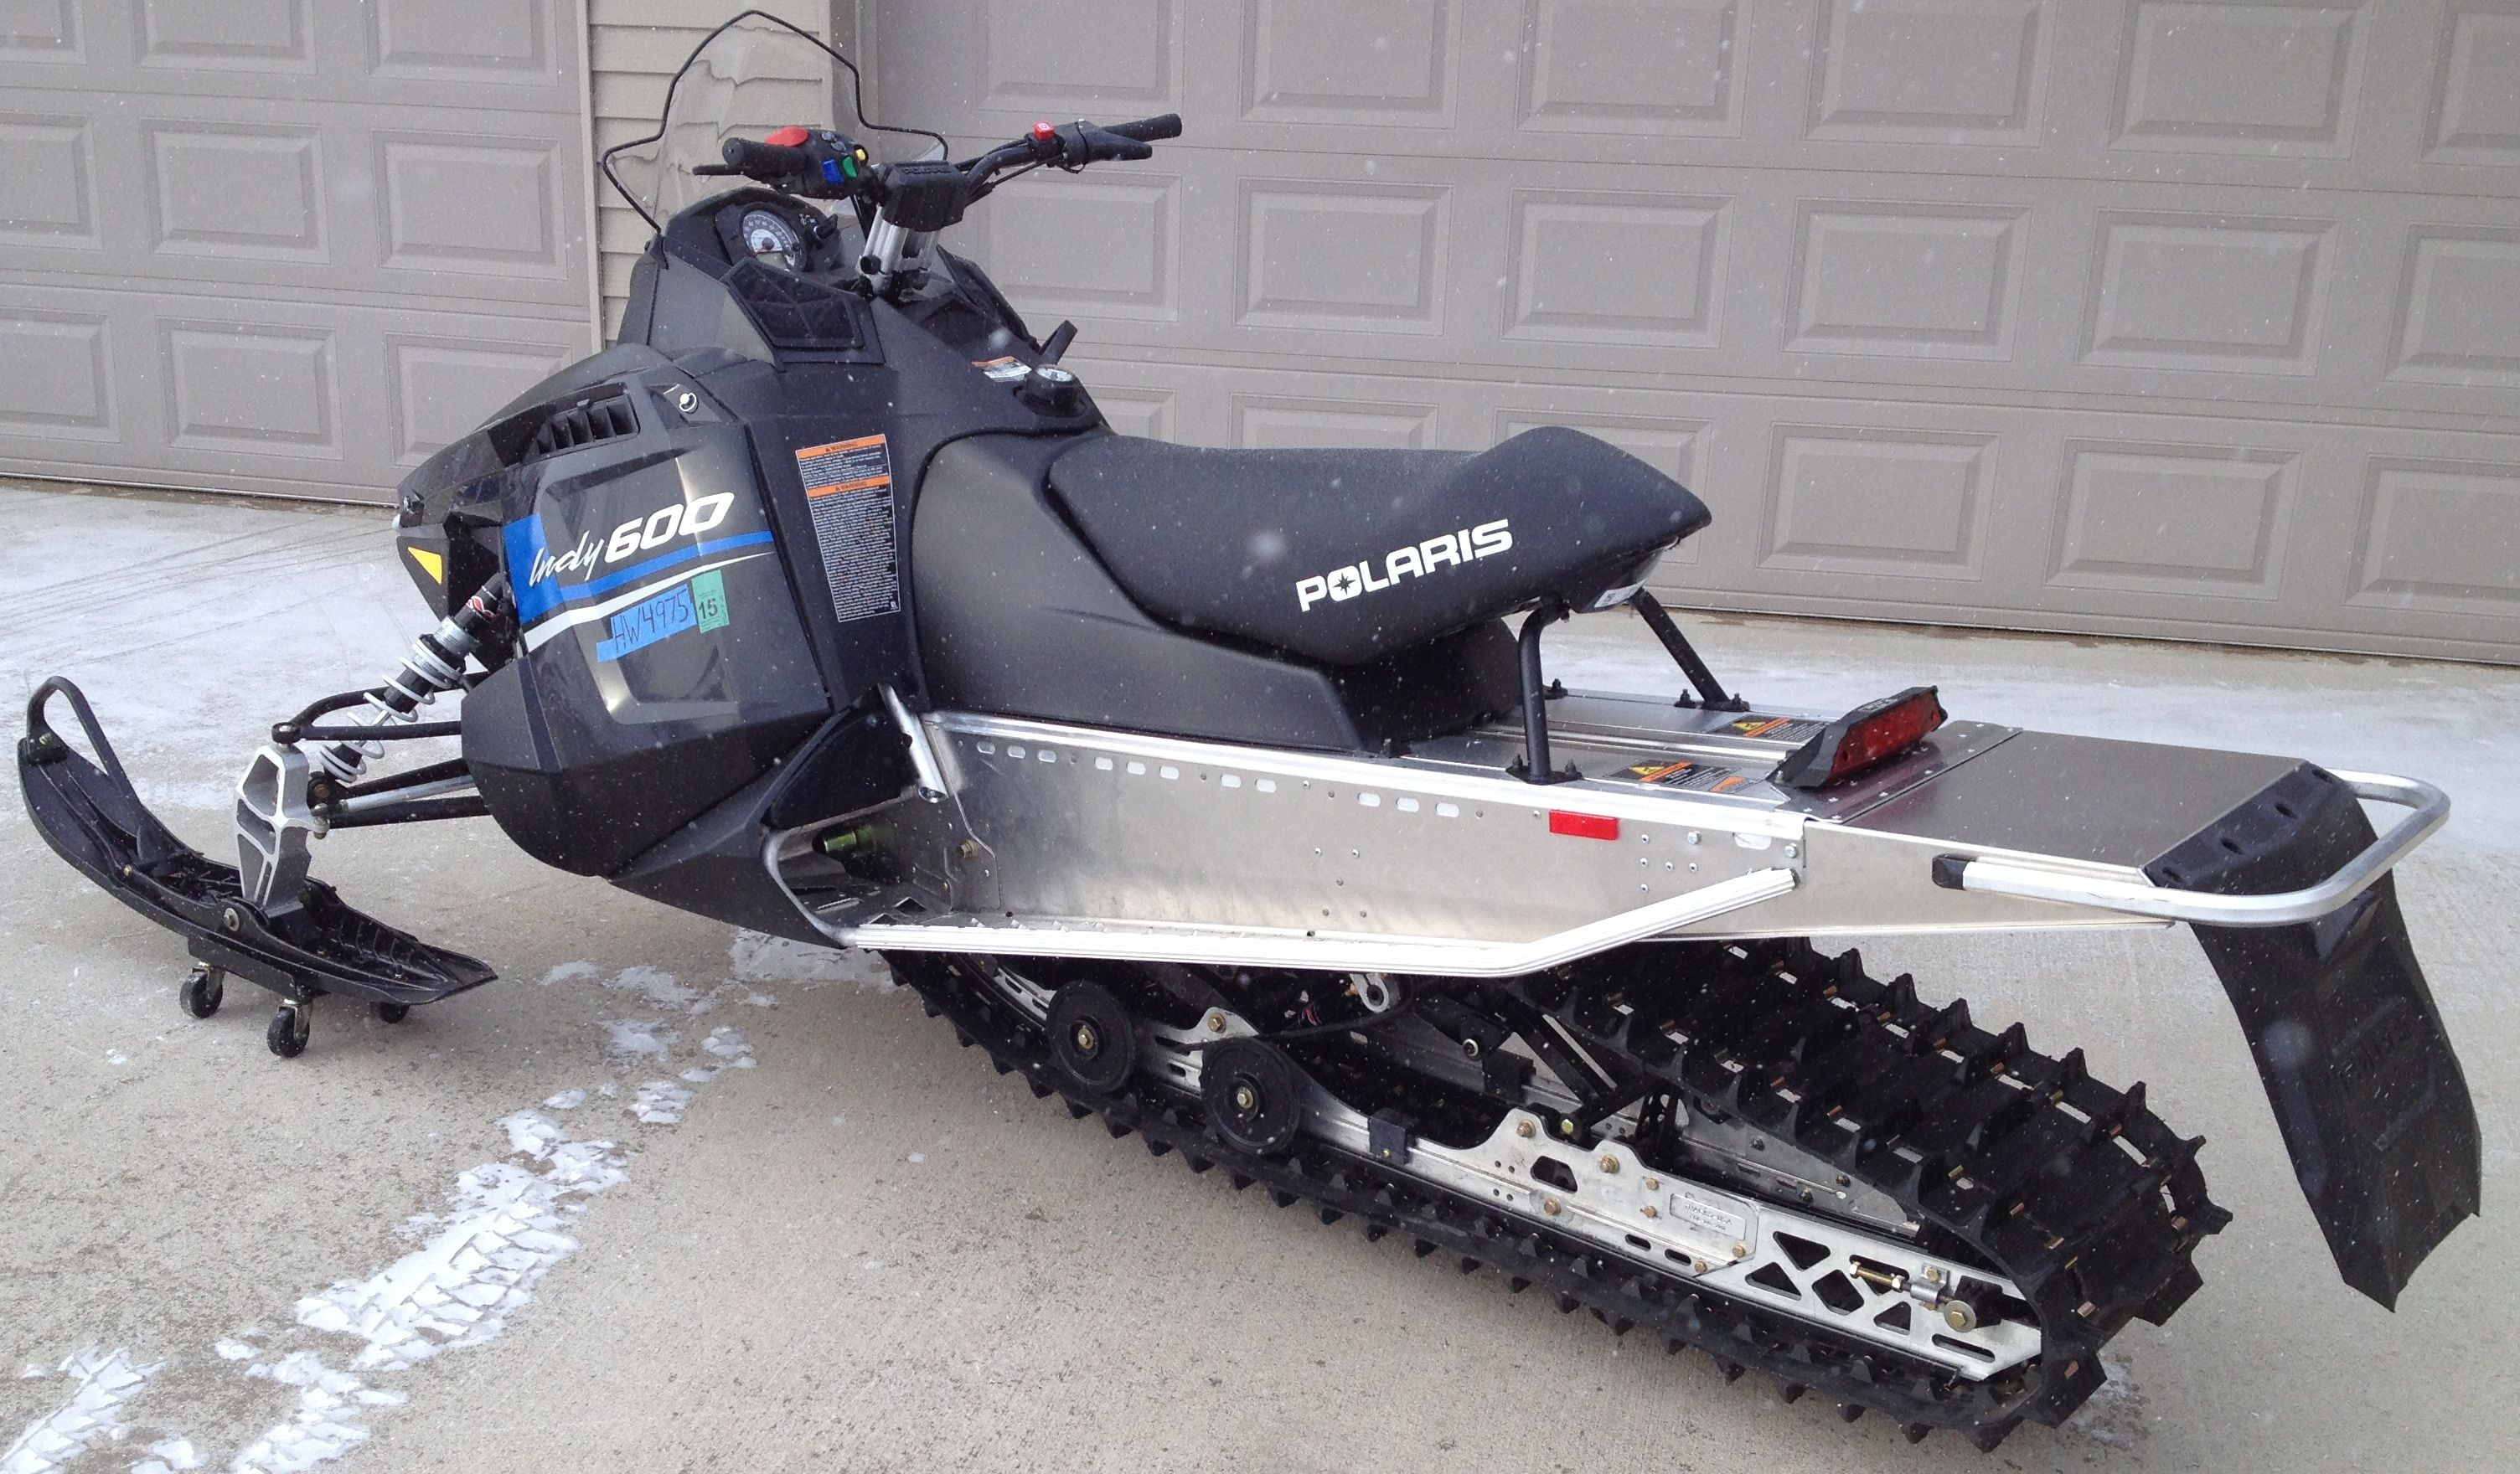 2013 Polaris Indy 600 Converted To 144 Snowmobile Indie Sleds